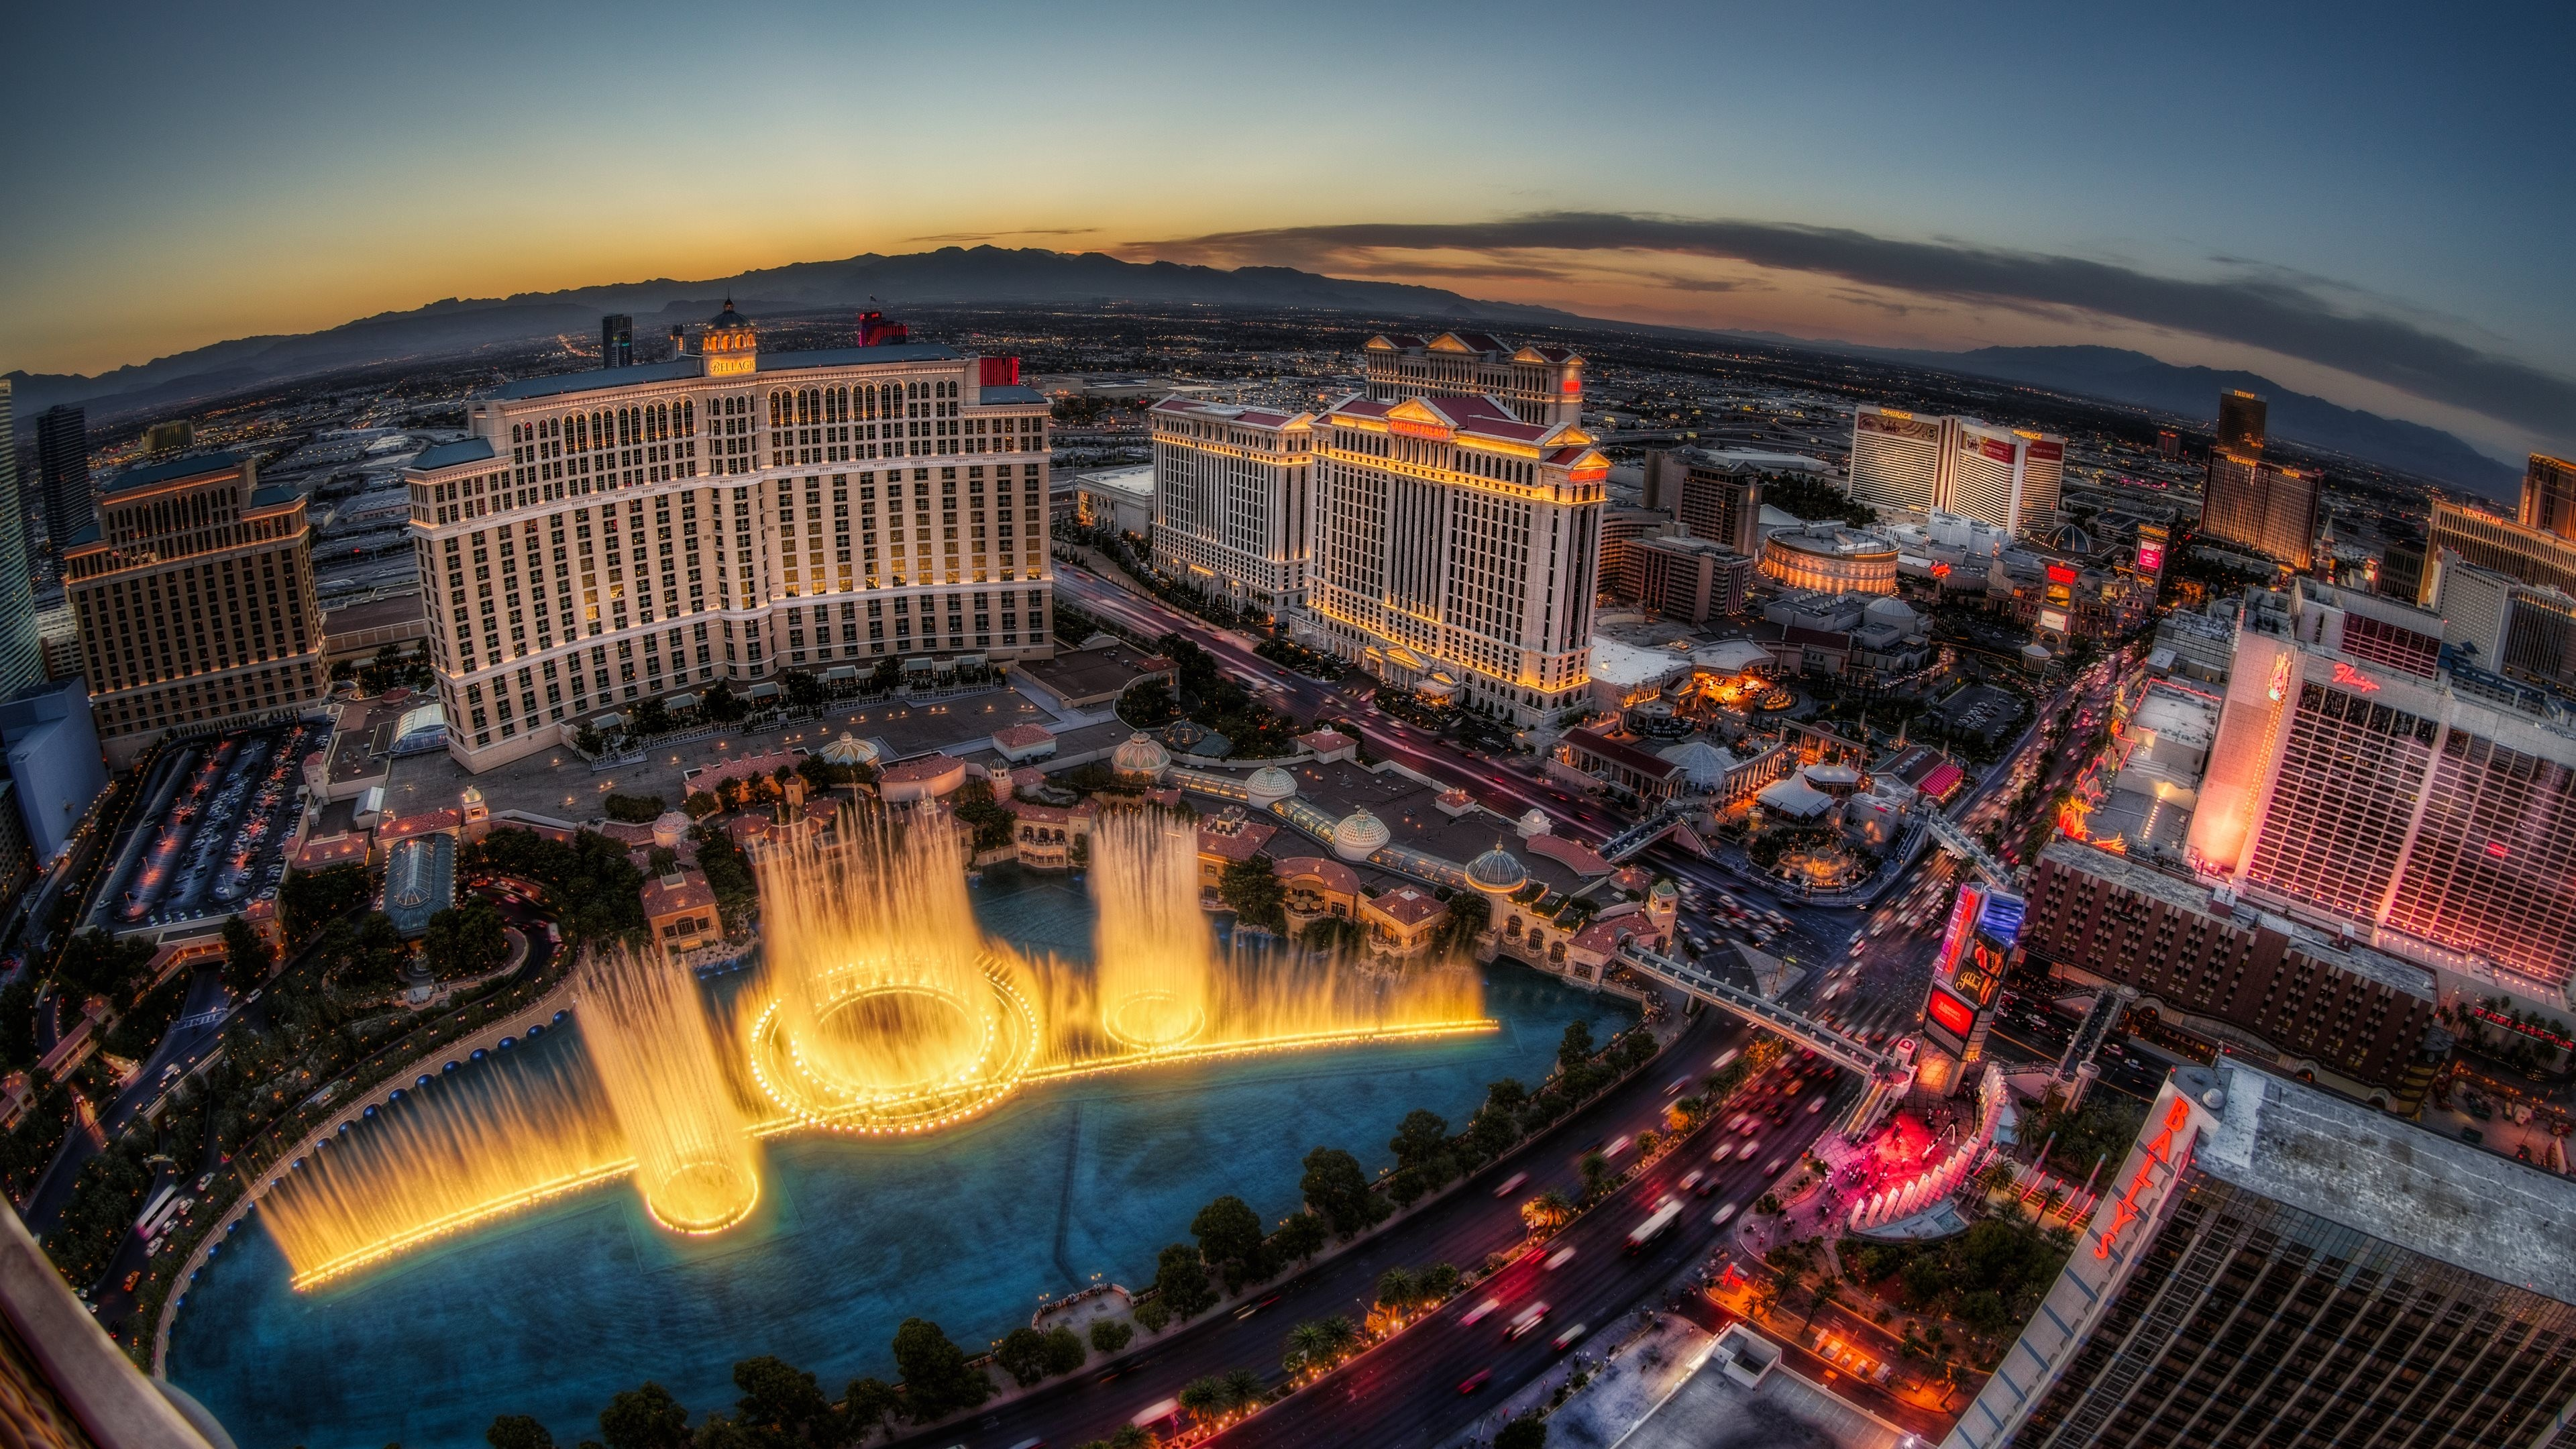 Wallpaper las vegas usa nevada bellagio fountain travel vacation sunset lights night - Las vegas wallpaper 4k ...